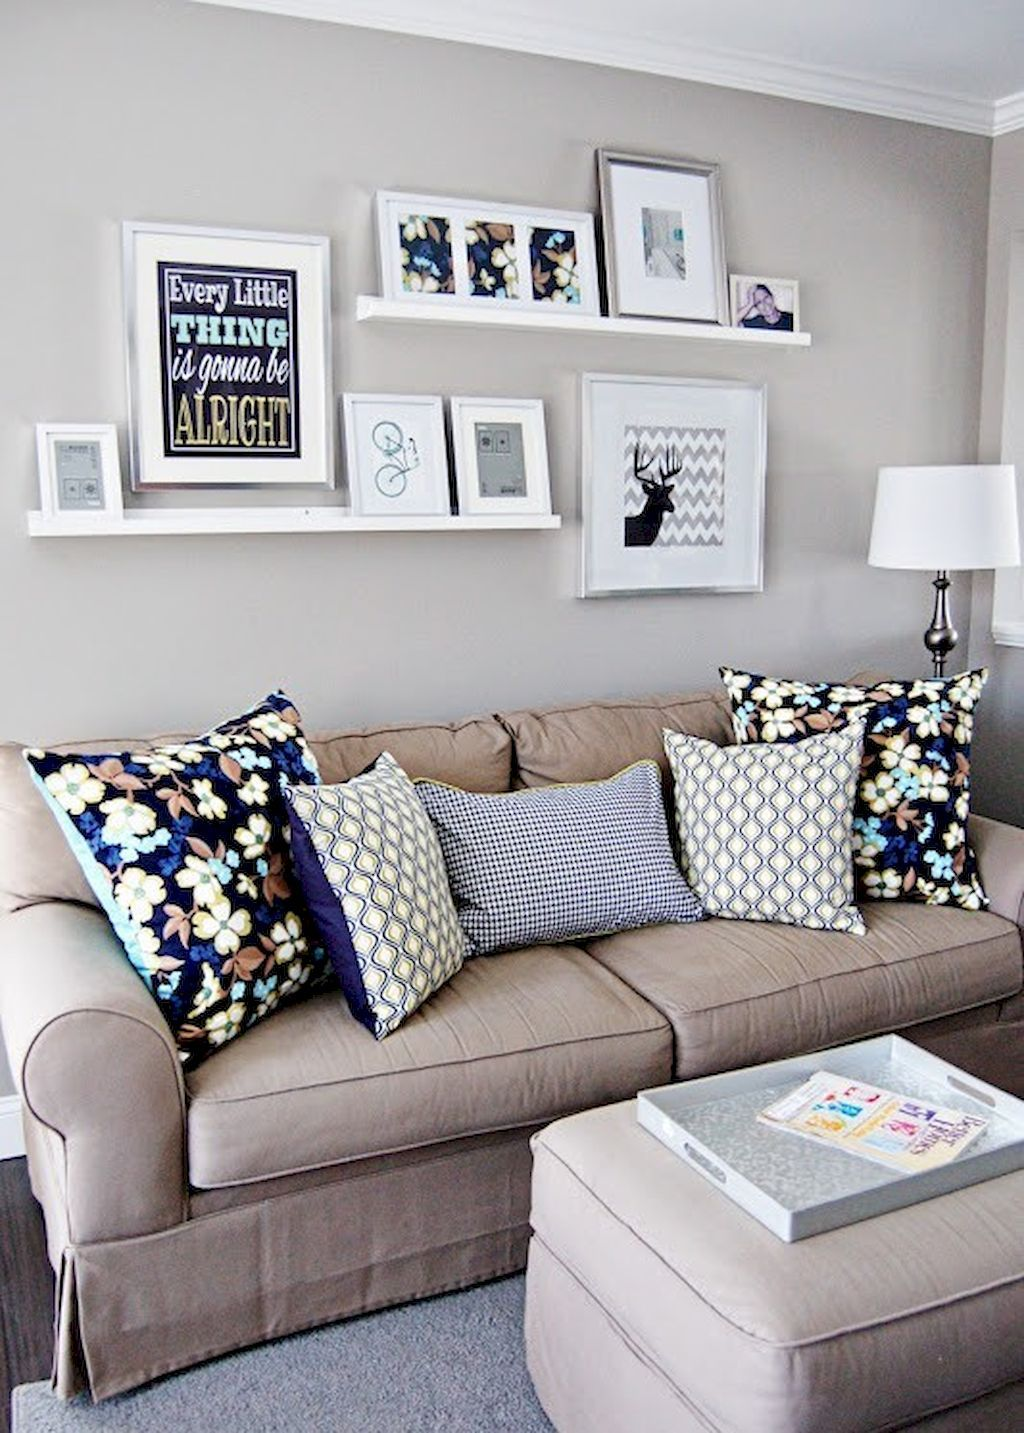 Beautiful Small Apartment Living Rooms Pictures Of Gray Painted All You Should Know About Interior Design Diy Home Decor Nice 40 And Cute Decorating Ideas On A Budget Https Decorapatio